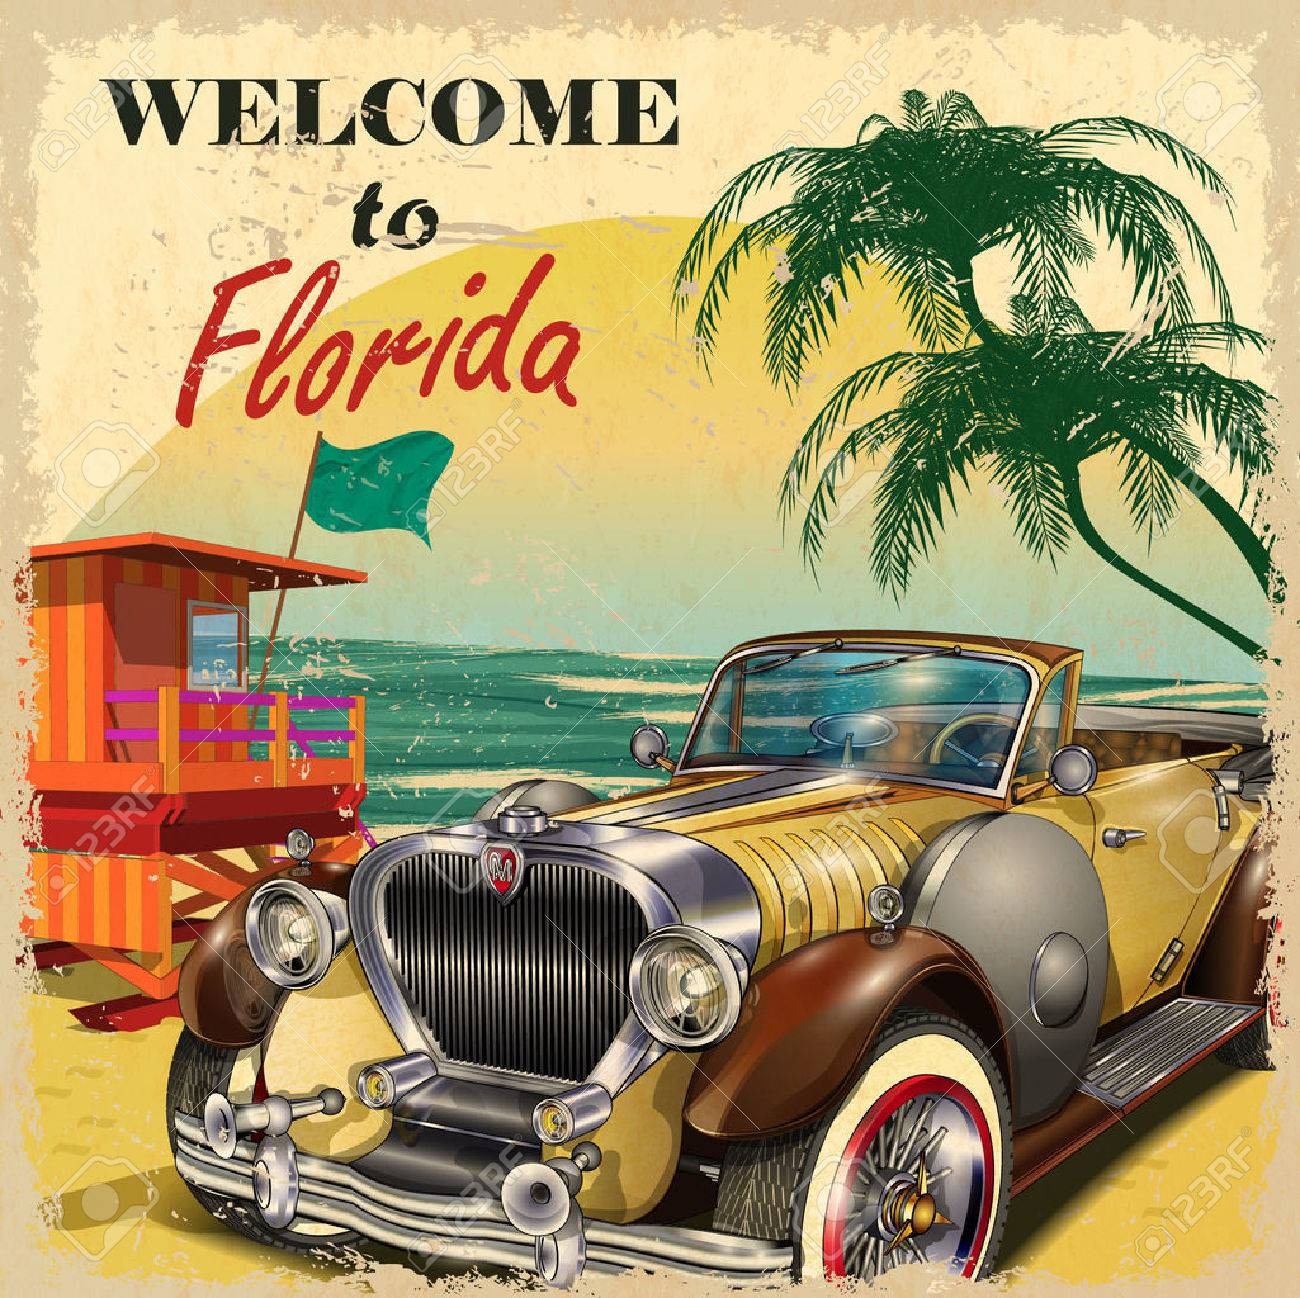 Welcome to Florida retro poster. - 52512513